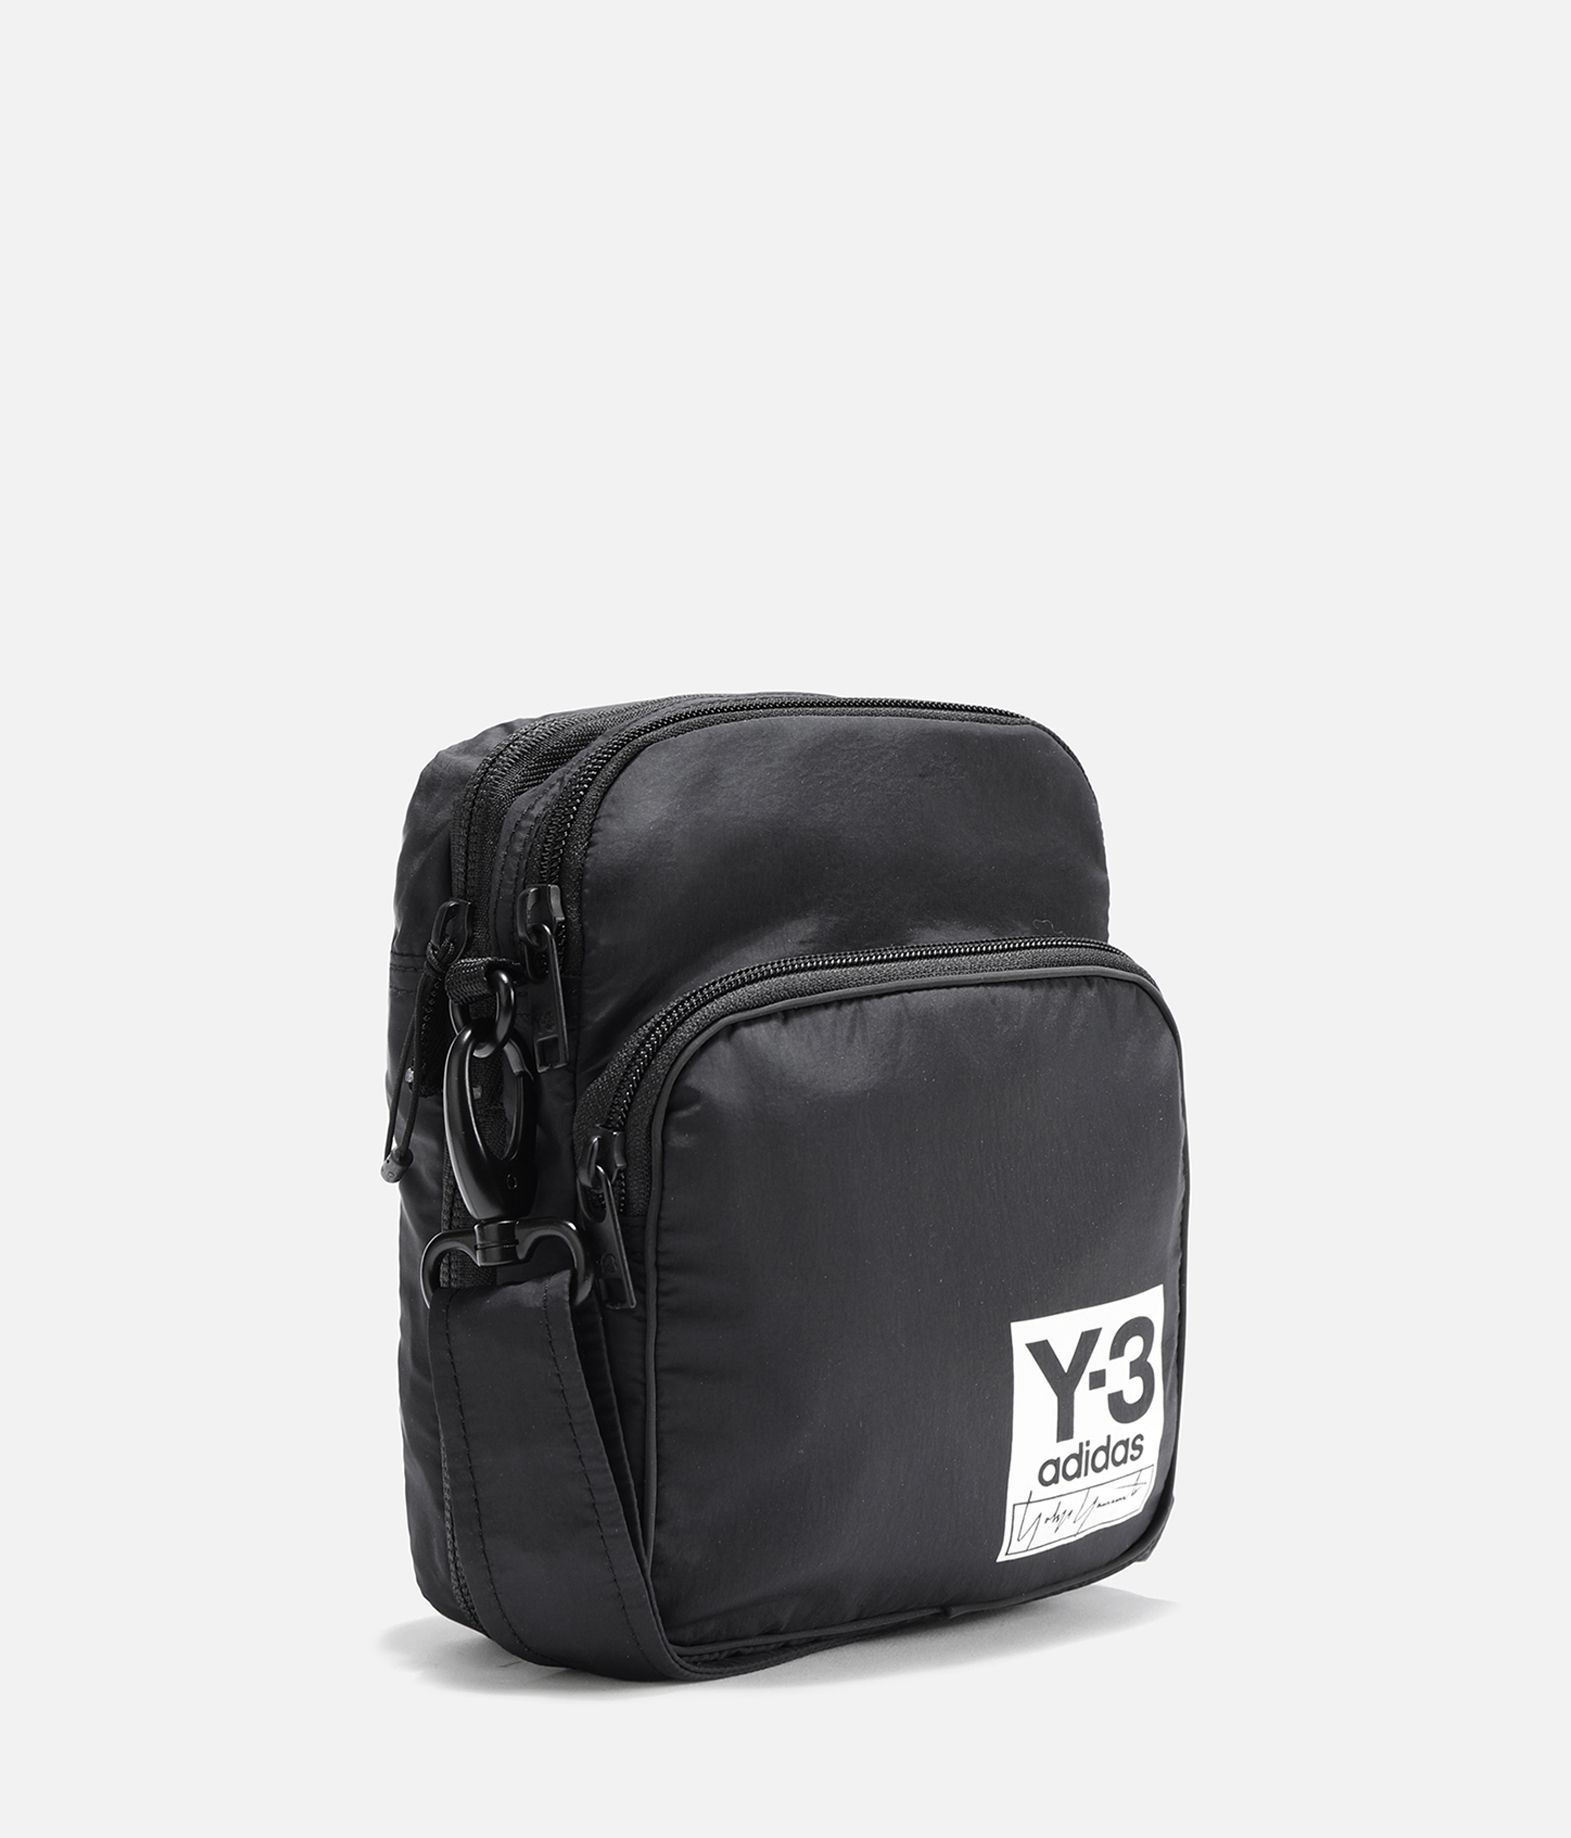 Y-3 Y-3 Packable Airliner Bag ショルダーバッグ E d